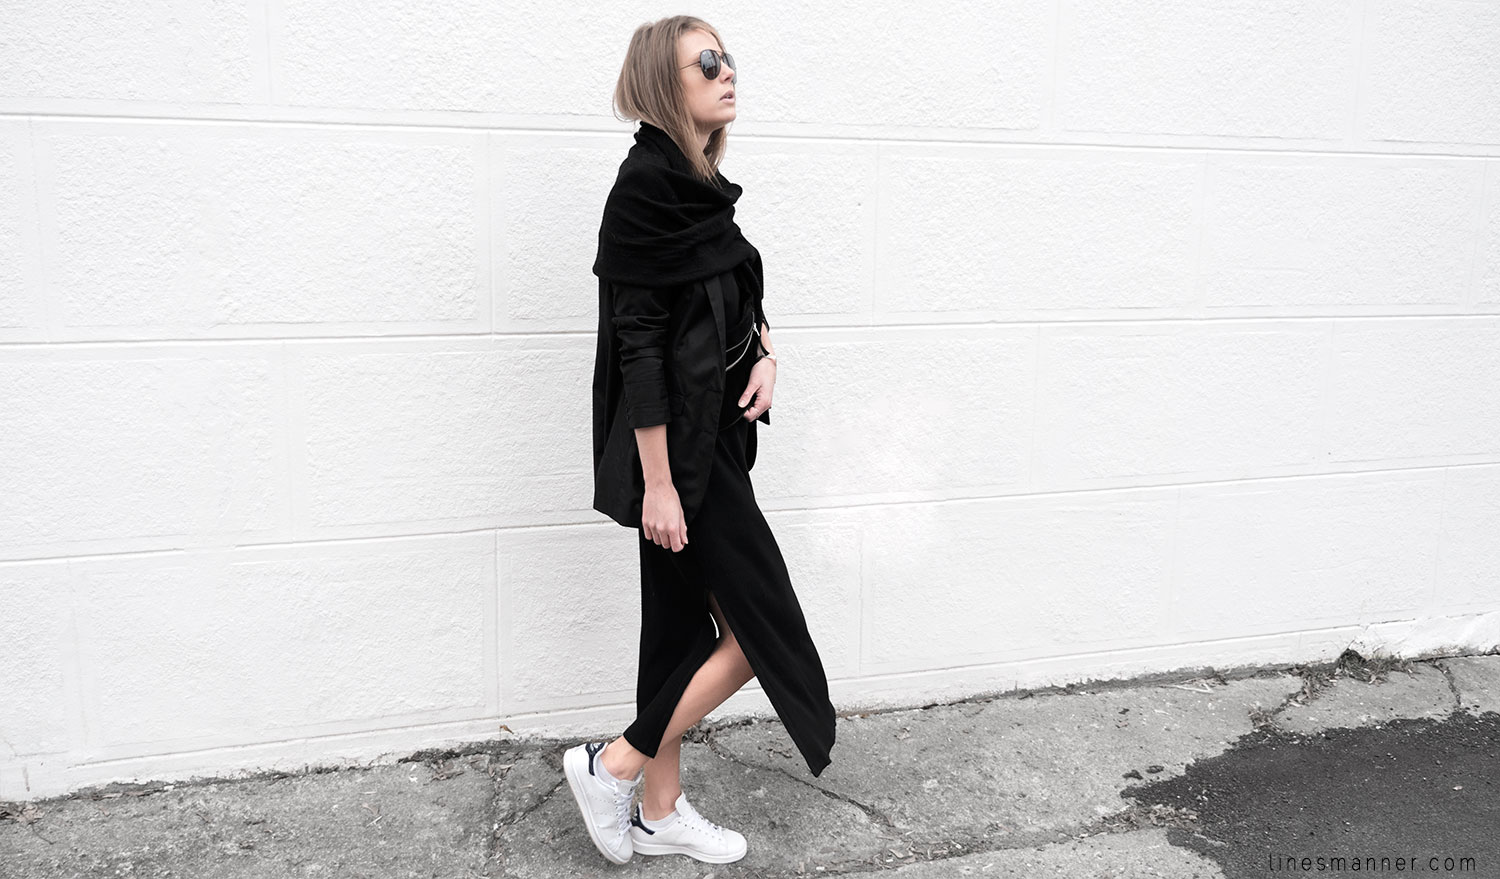 Lines-Manner-Black-Relaxed-Tone_on_Tone-Monochrome-Minimal-Sophistication-Comfort-Modern-Simplicity-Casual-Sporty_Luxe-Slit_Dress-Thrid_Form-Blazer-Essentials-Details-Basics-Timeless-Verstatile-Staple-Wardrobe-Sleek-Clean_Lines-All_Black_Everything-12